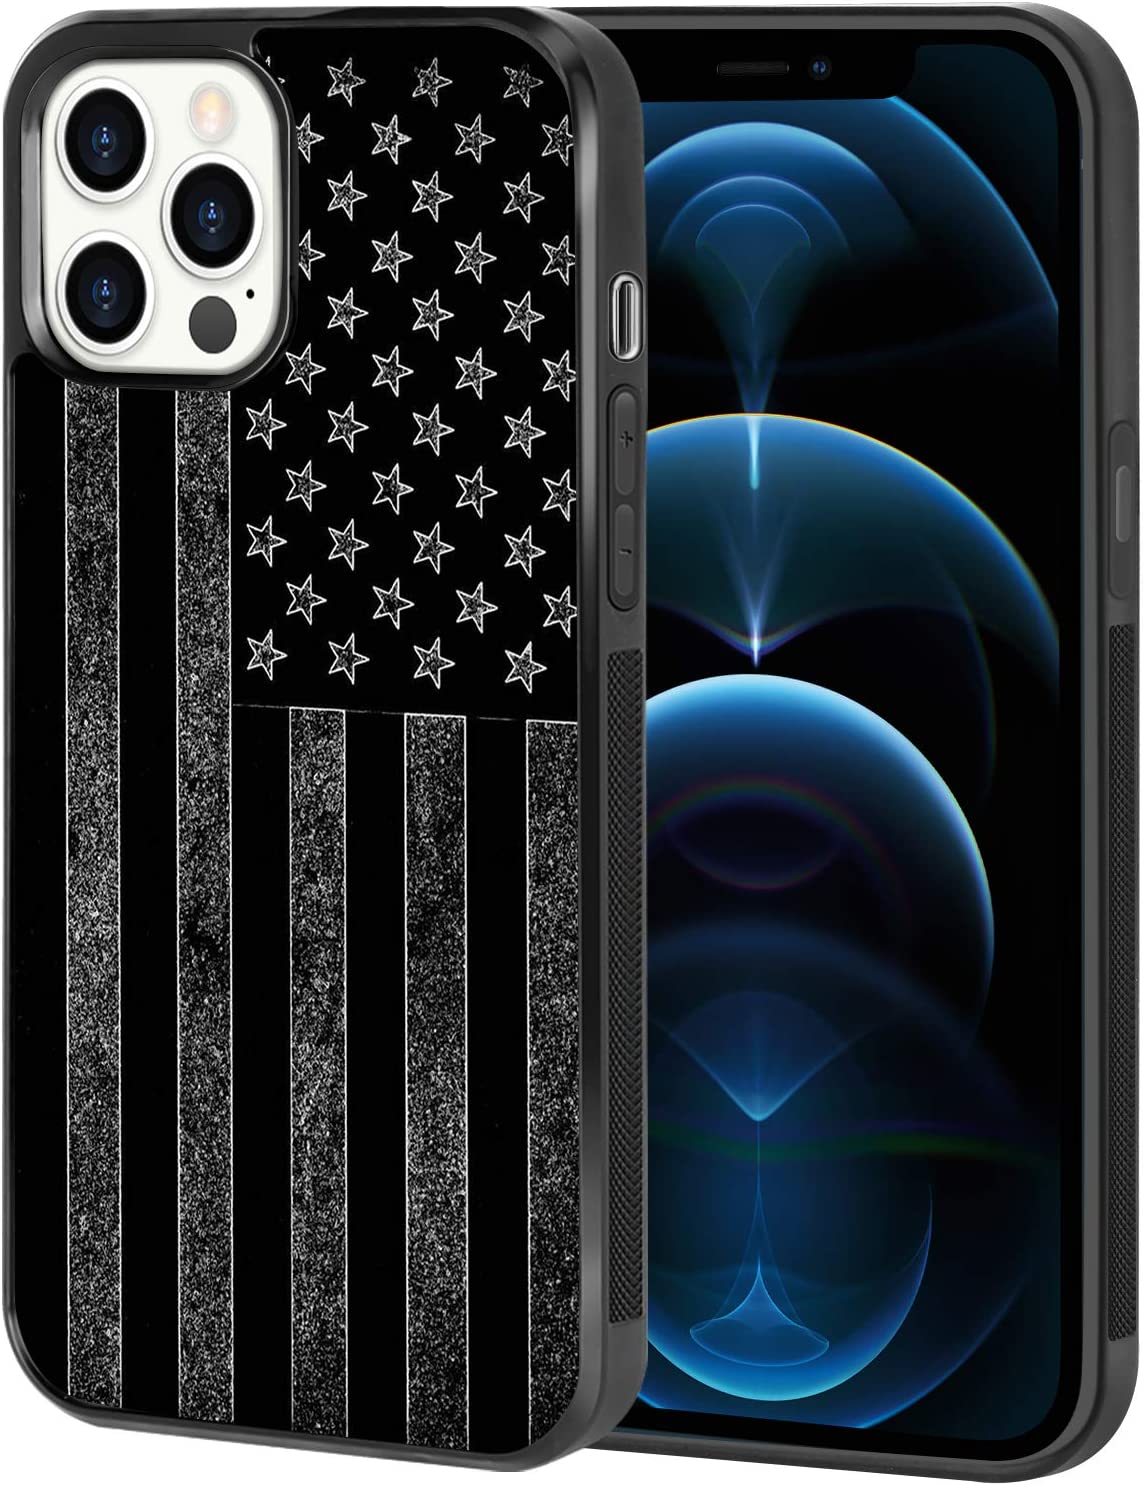 AIGOMARA iPhone 12 Pro Case, iPhone 12 Case (2020) Black White American Flag Cute Slim Tire Anti-Slip Texture Soft TPU Bumper Shockproof Full Protection Smooth Glossy Hard Back Cover 6.1 Inch